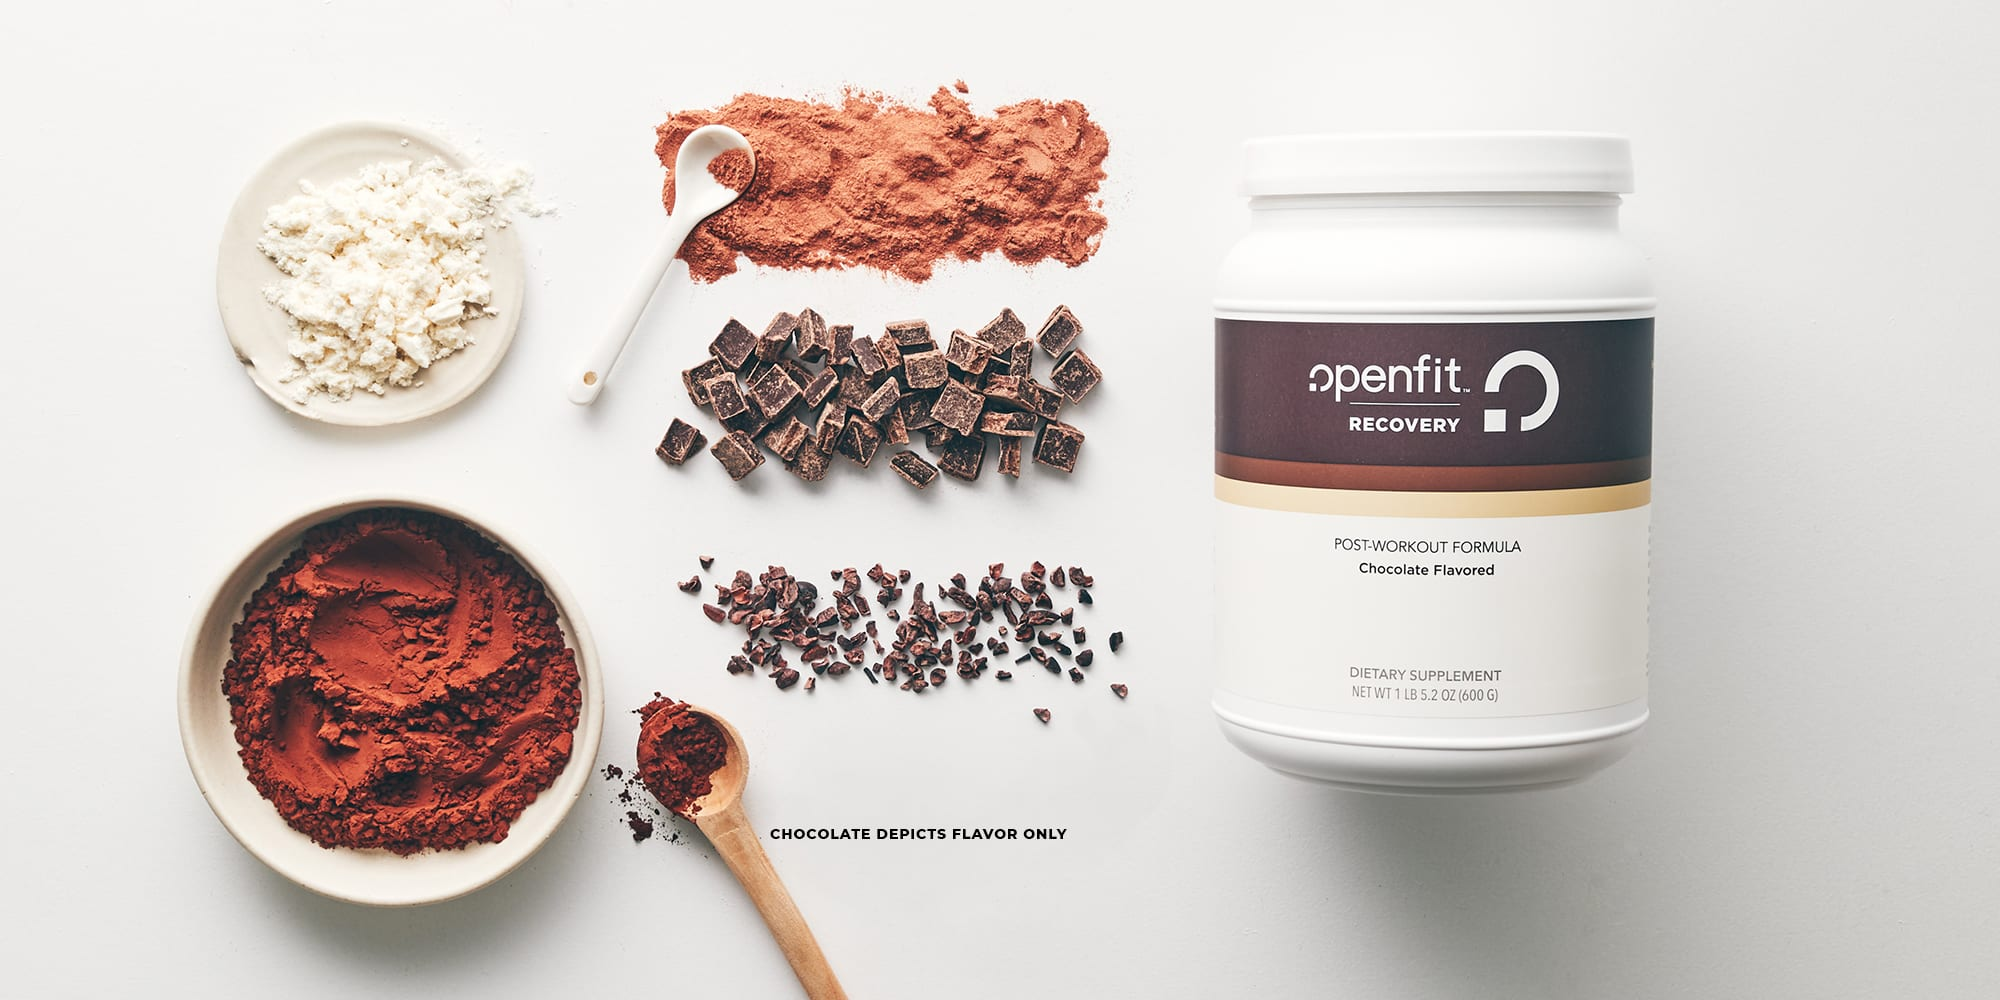 Openfit Recovery Post-Workout Formula